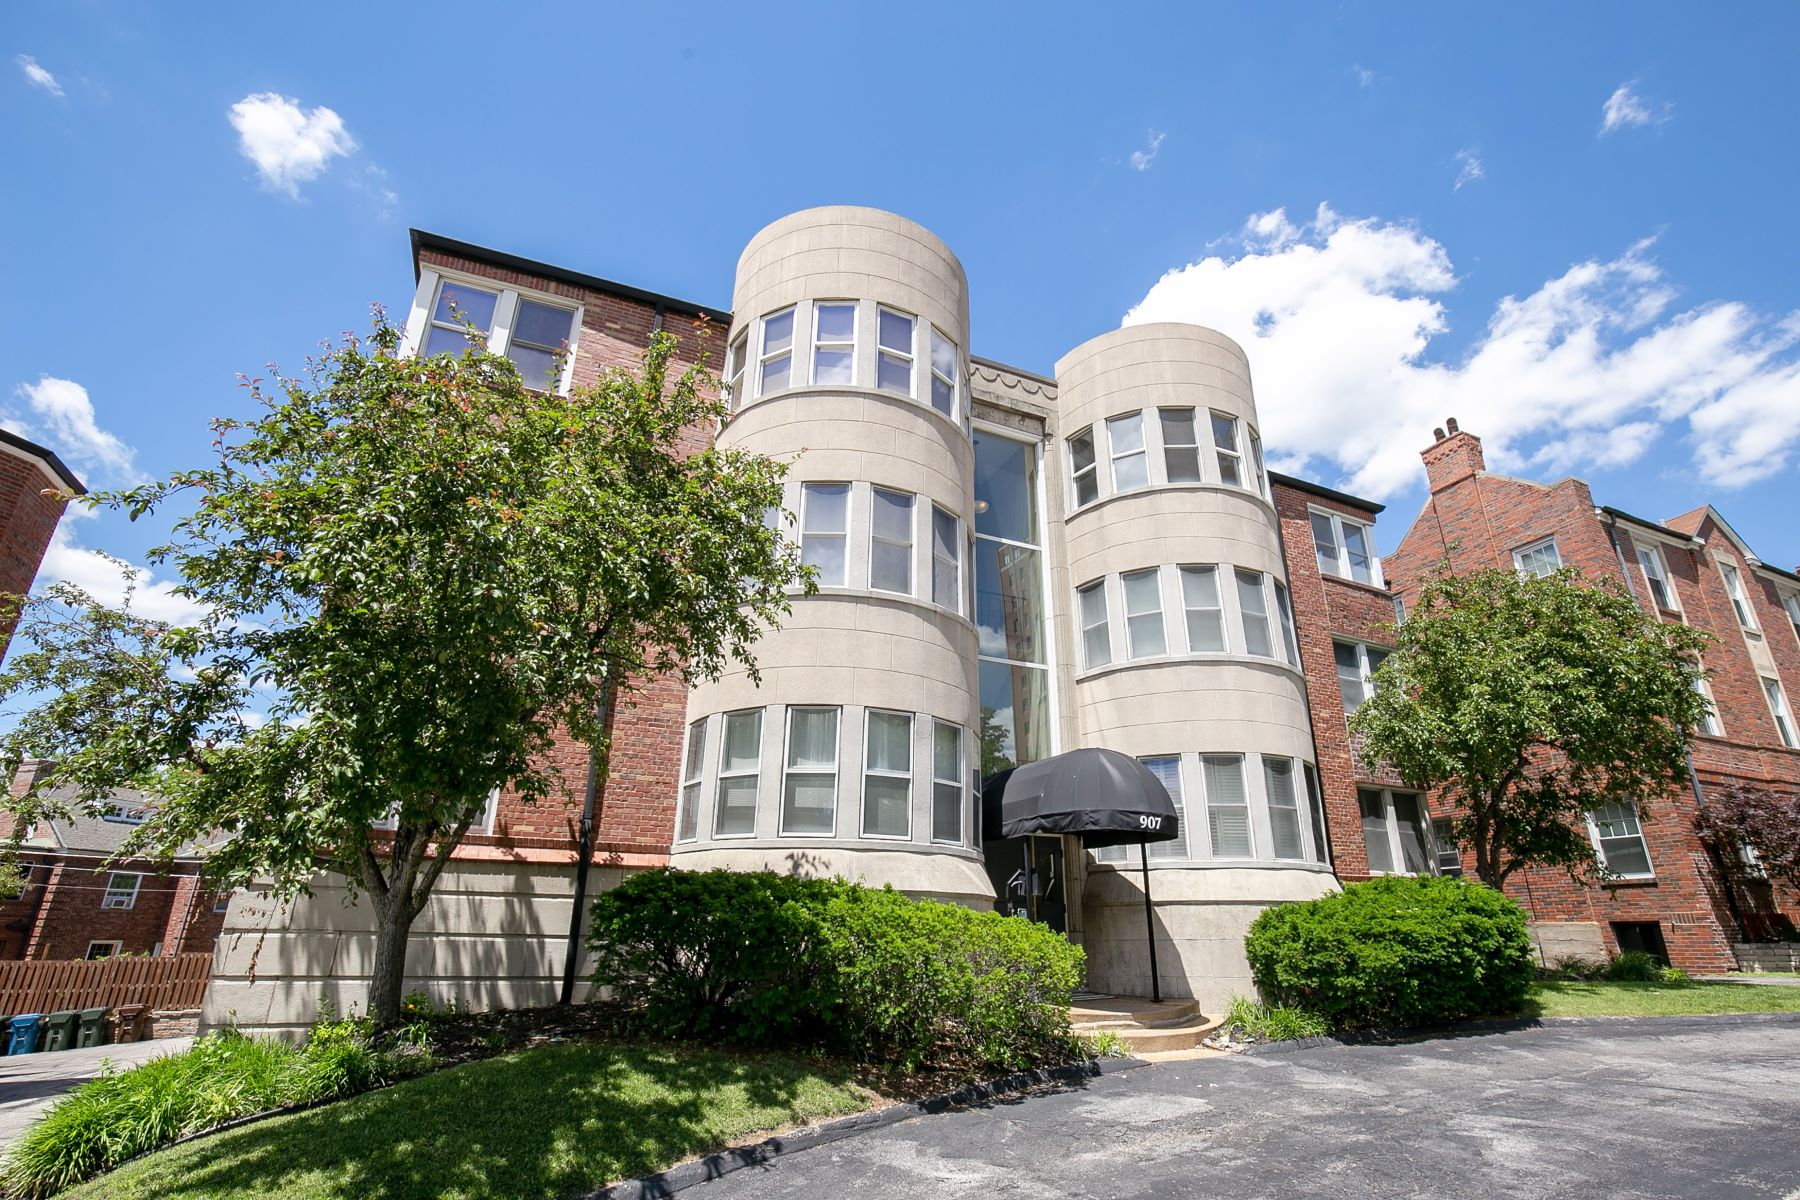 Property for Sale at Fresh and newly-renovated 3 bedroom condo in Clayton! 907 South Hanley Road #3 Clayton, Missouri 63105 United States